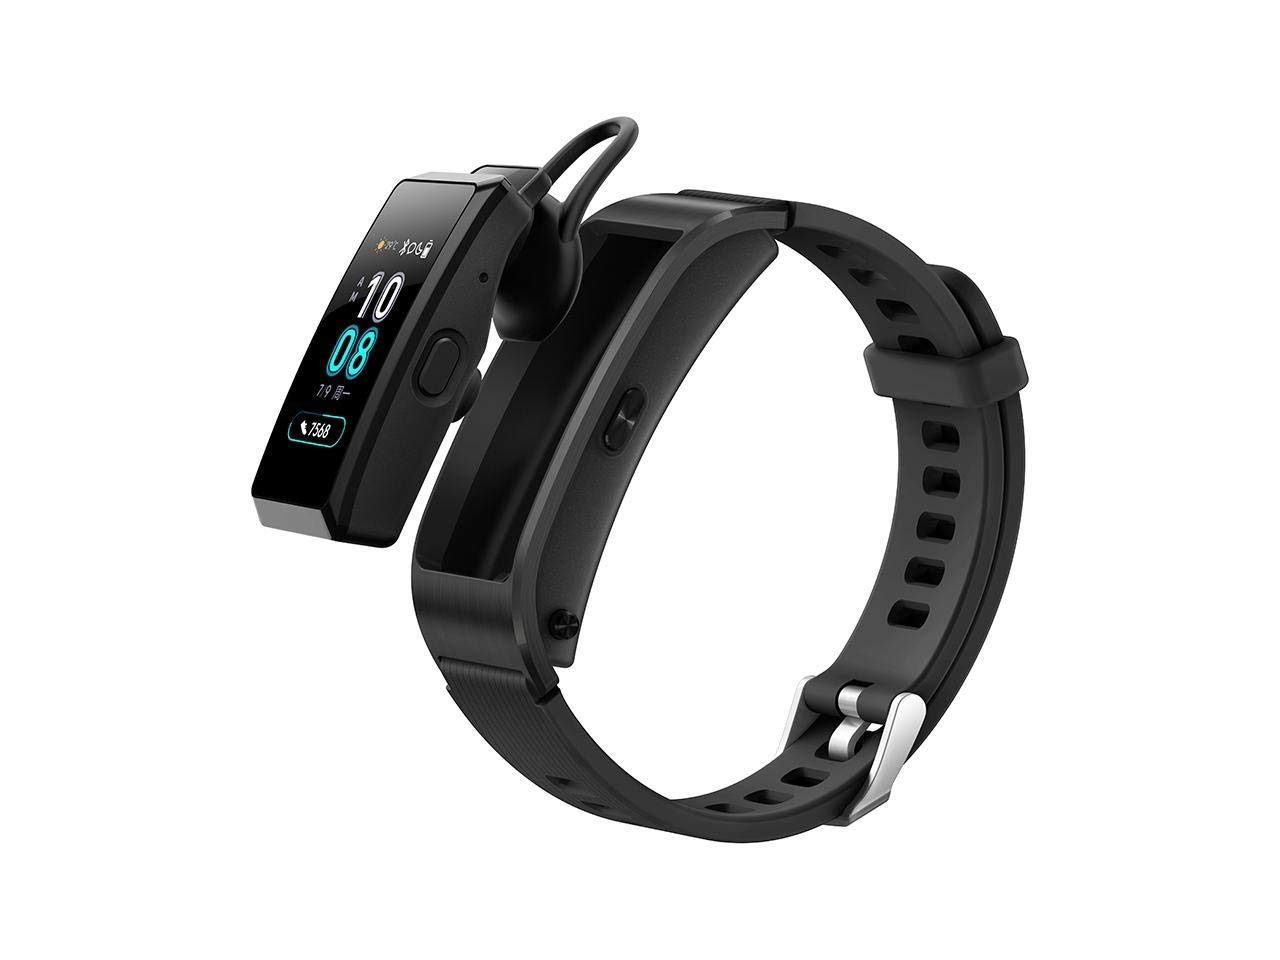 HUAWEI TalkBand B5 2018 Active Edition Wristband Fitness Tracker Sport Band Headset Function (Bluetooth handsfree) JNS-BX9 (Black)